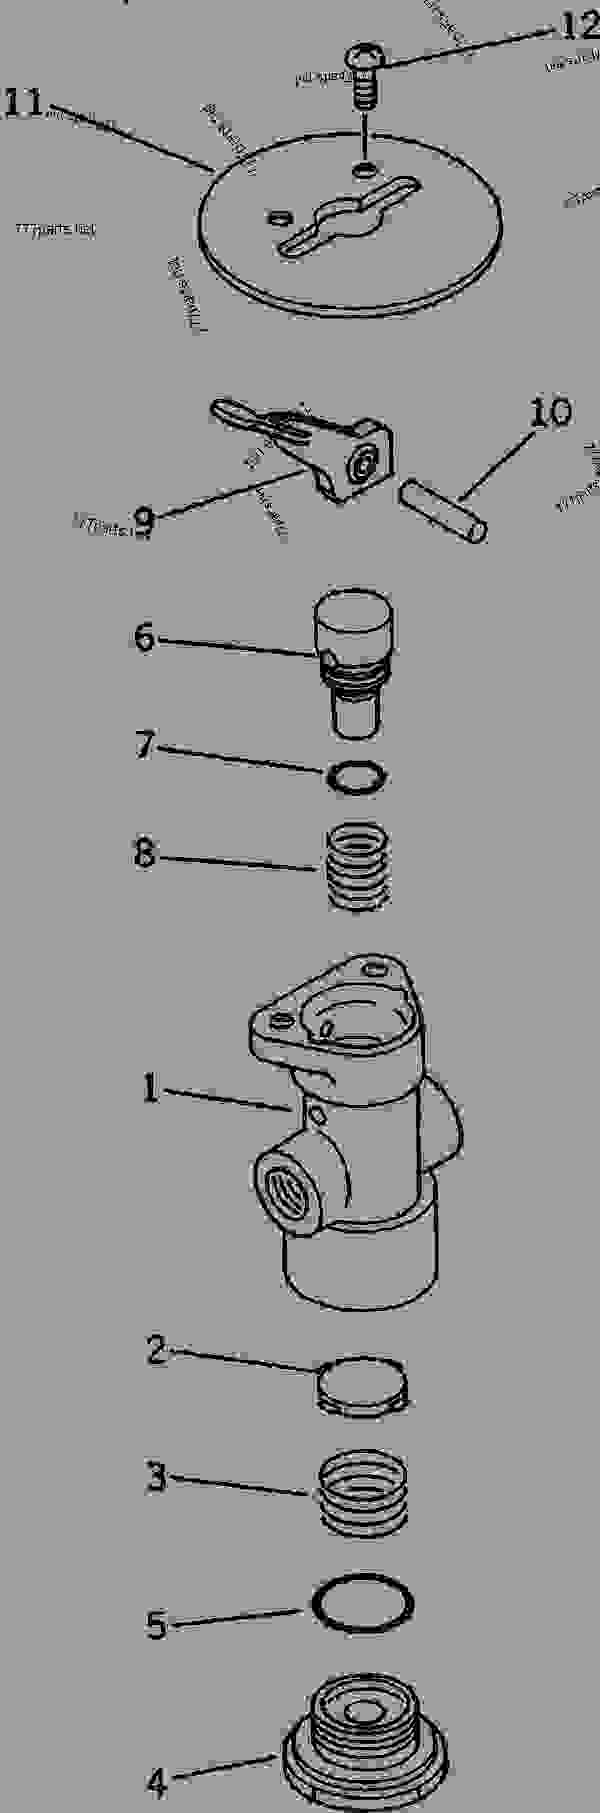 Схема запчастей PARKING BRAKE VALVE - Самосвал Komatsu HD205-3 - DRIVE SHAFT? DIFFERENTIAL? WHEELS AND AIR SYSTEM | 777parts